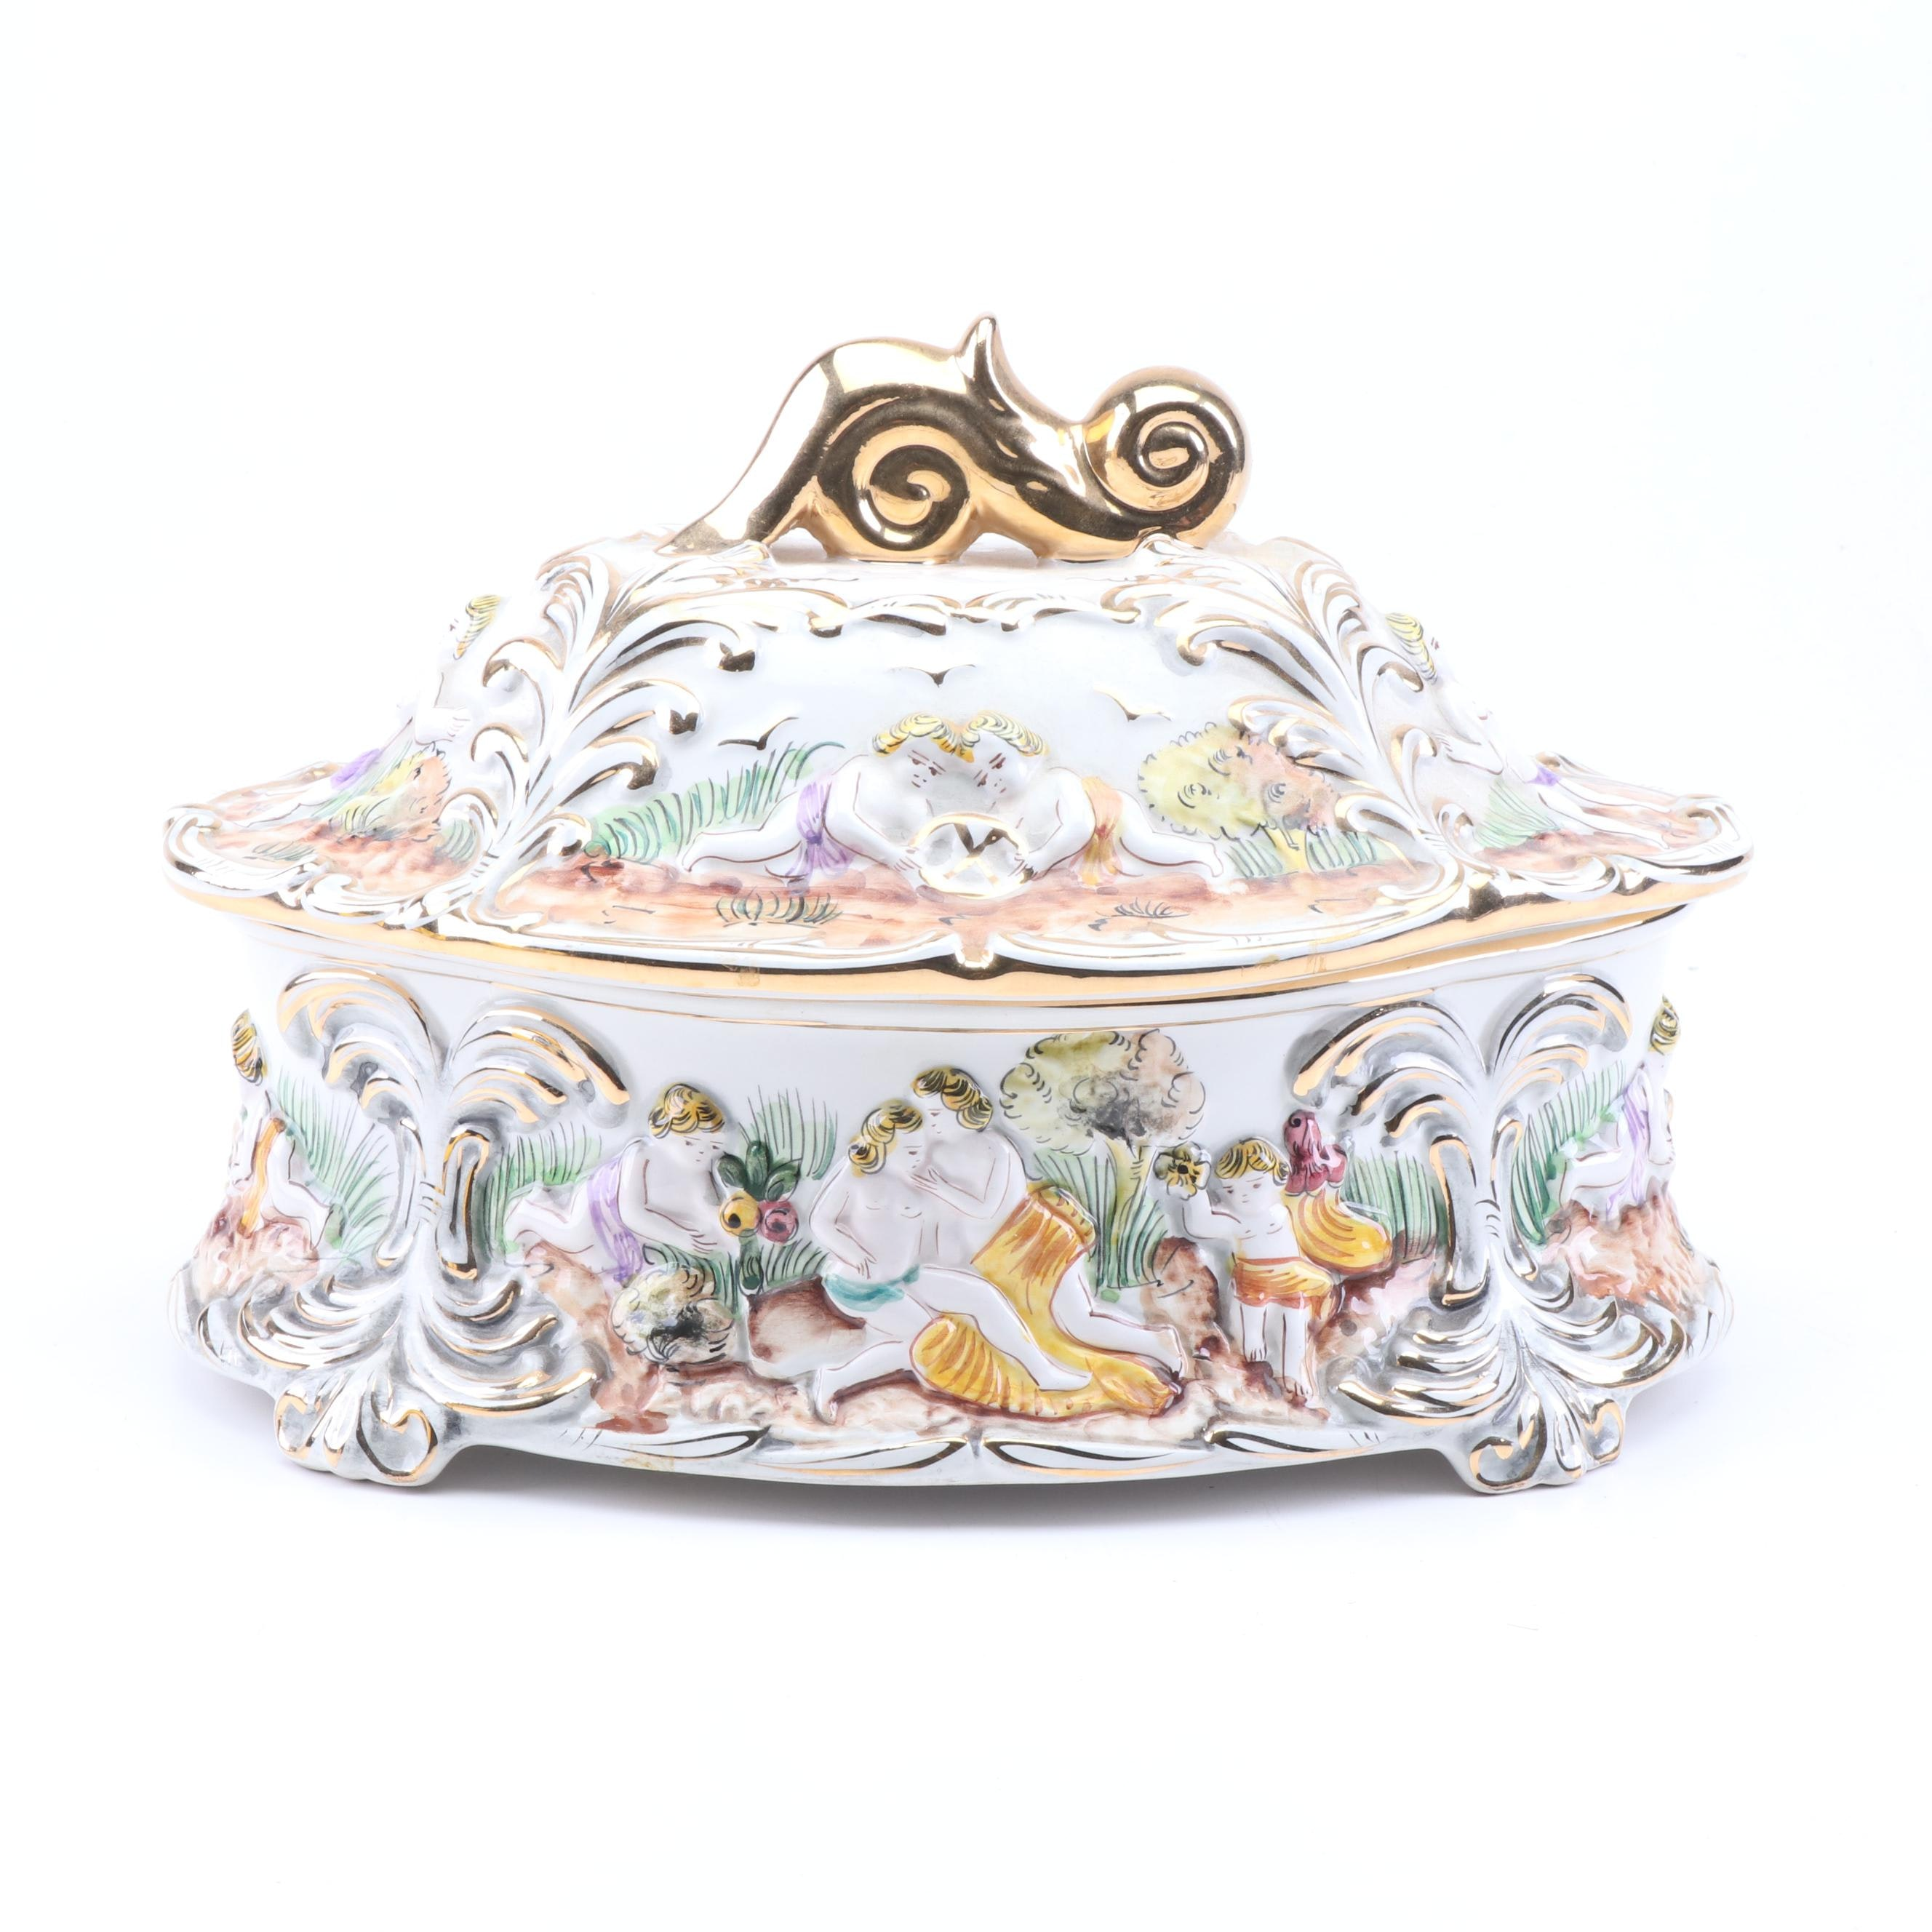 ELPA Alcobaca for S.A. Leart Portuguese Tureen with Gold Lustre